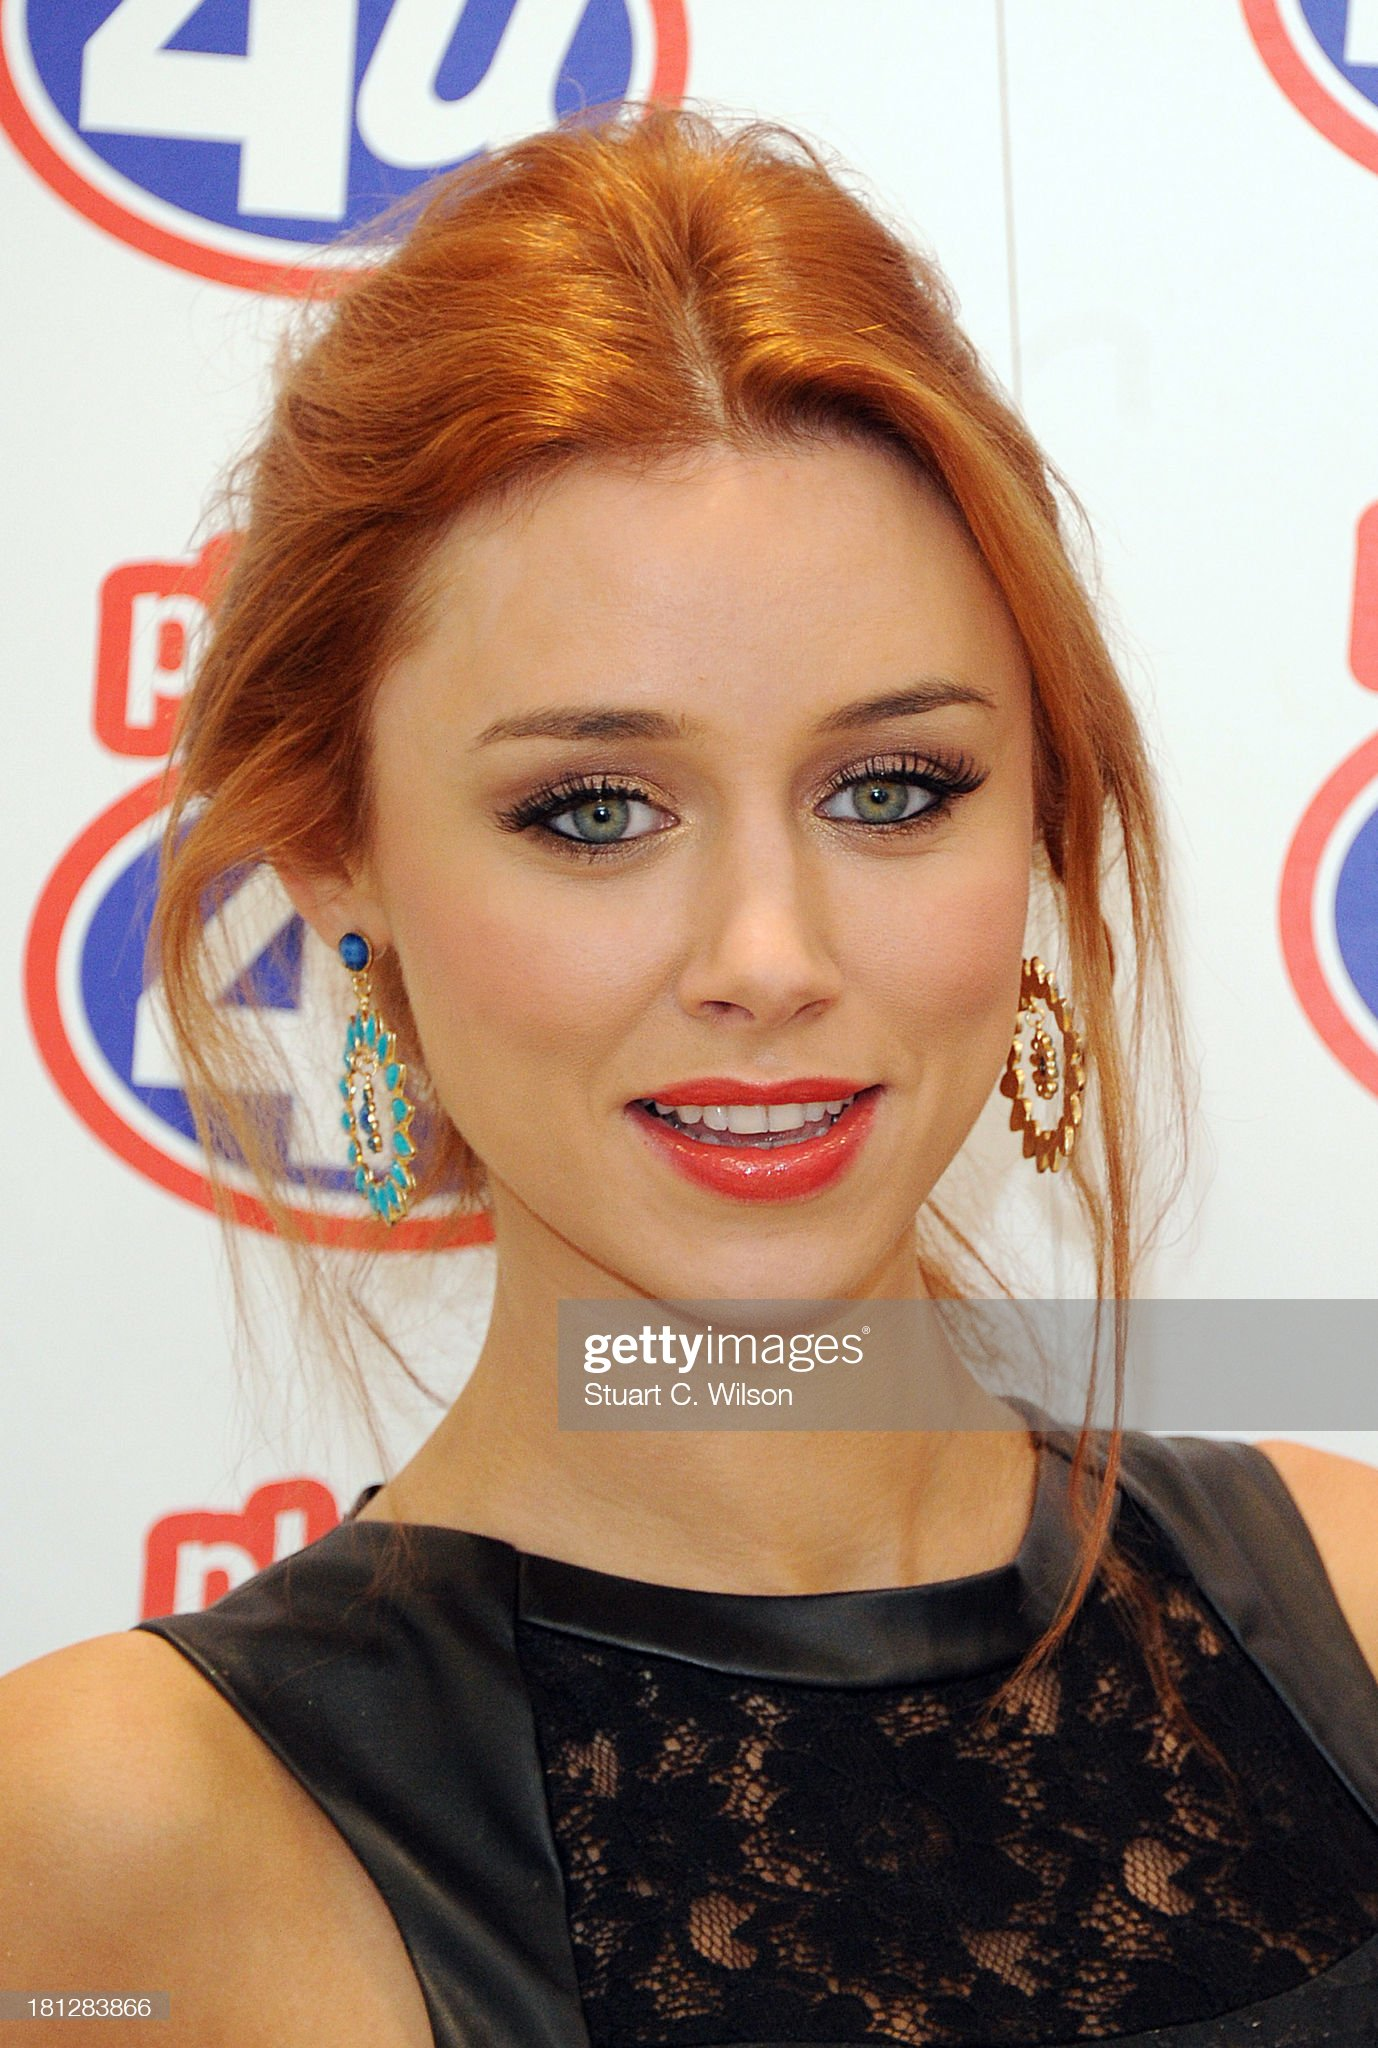 Ojos verdes - Famosas y famosos con los ojos de color VERDE Una-healy-of-the-saturdays-attends-a-photocall-to-promote-the-phones-picture-id181283866?s=2048x2048